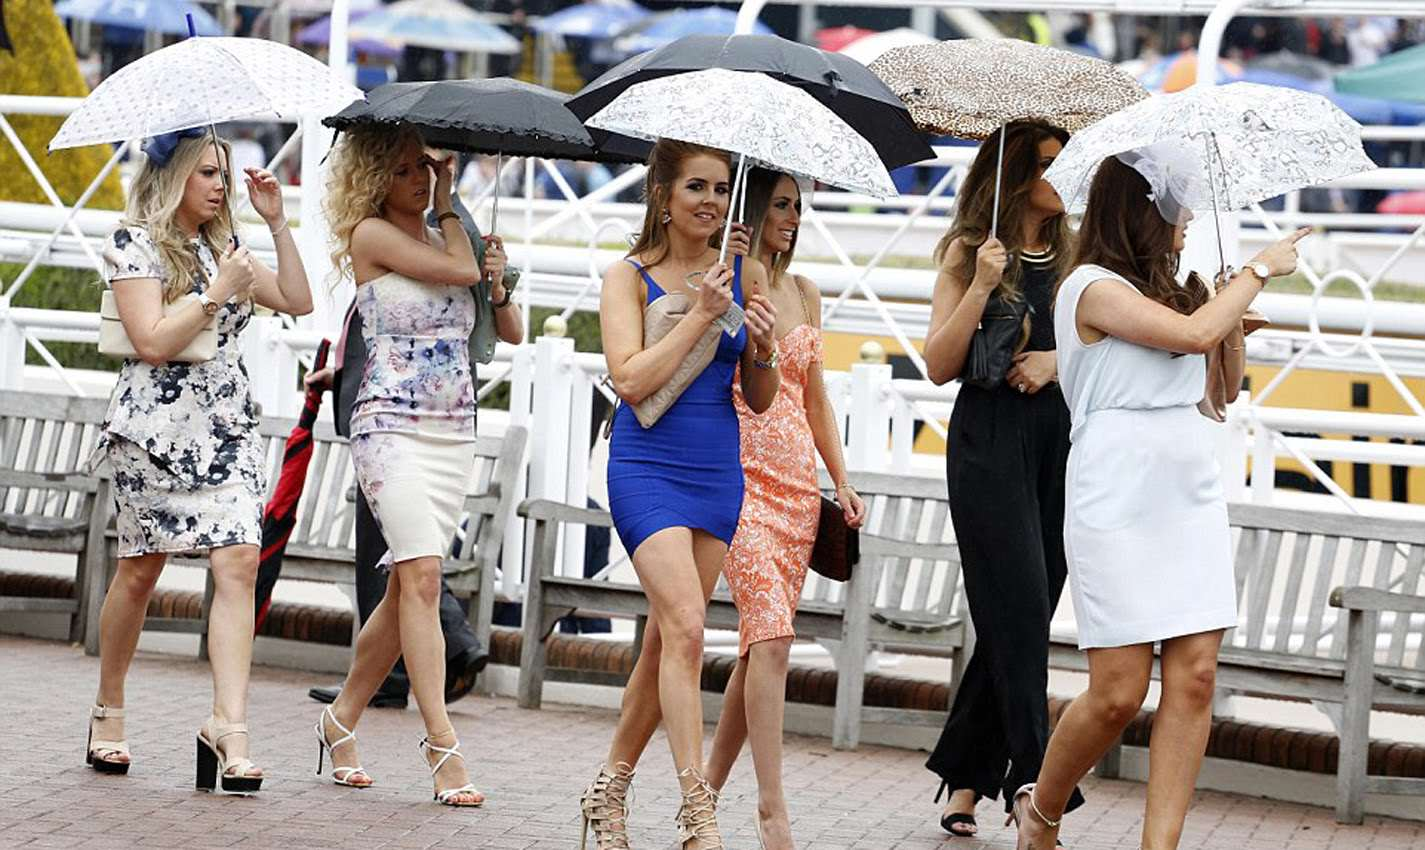 ladiesday Video Shows Brutal Five Woman Stiletto Brawl At The Races